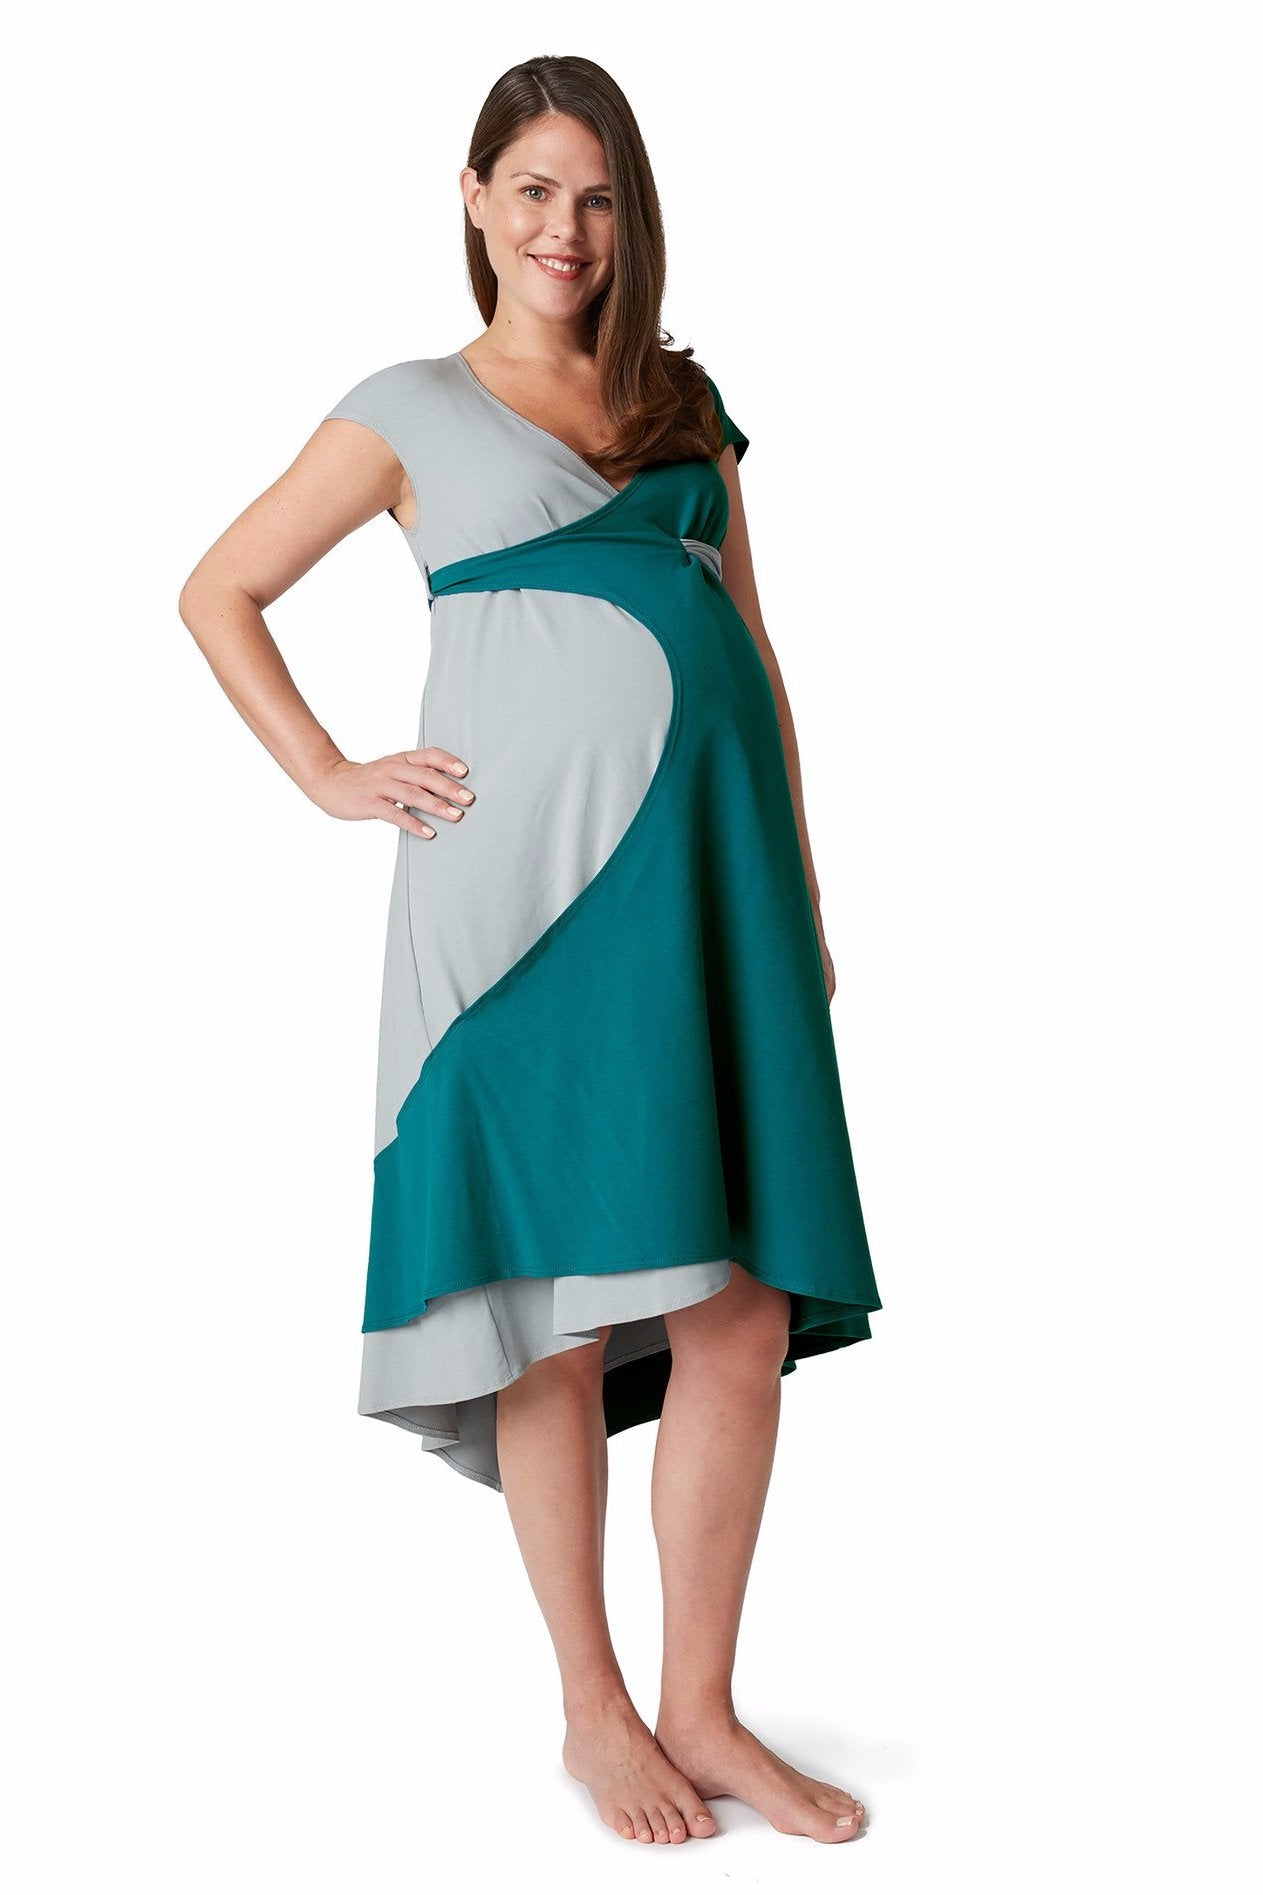 Maternity Dress, Birthing Gown, and Nursing dress all in one